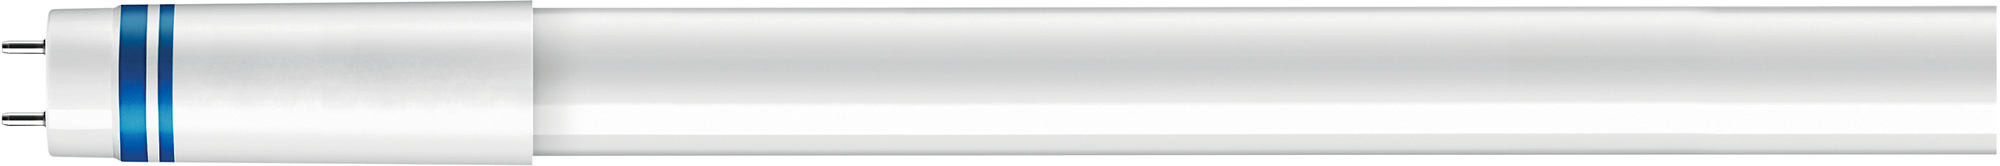 Philips MASTER LEDtube Value 1500mm 23W865 C ROT